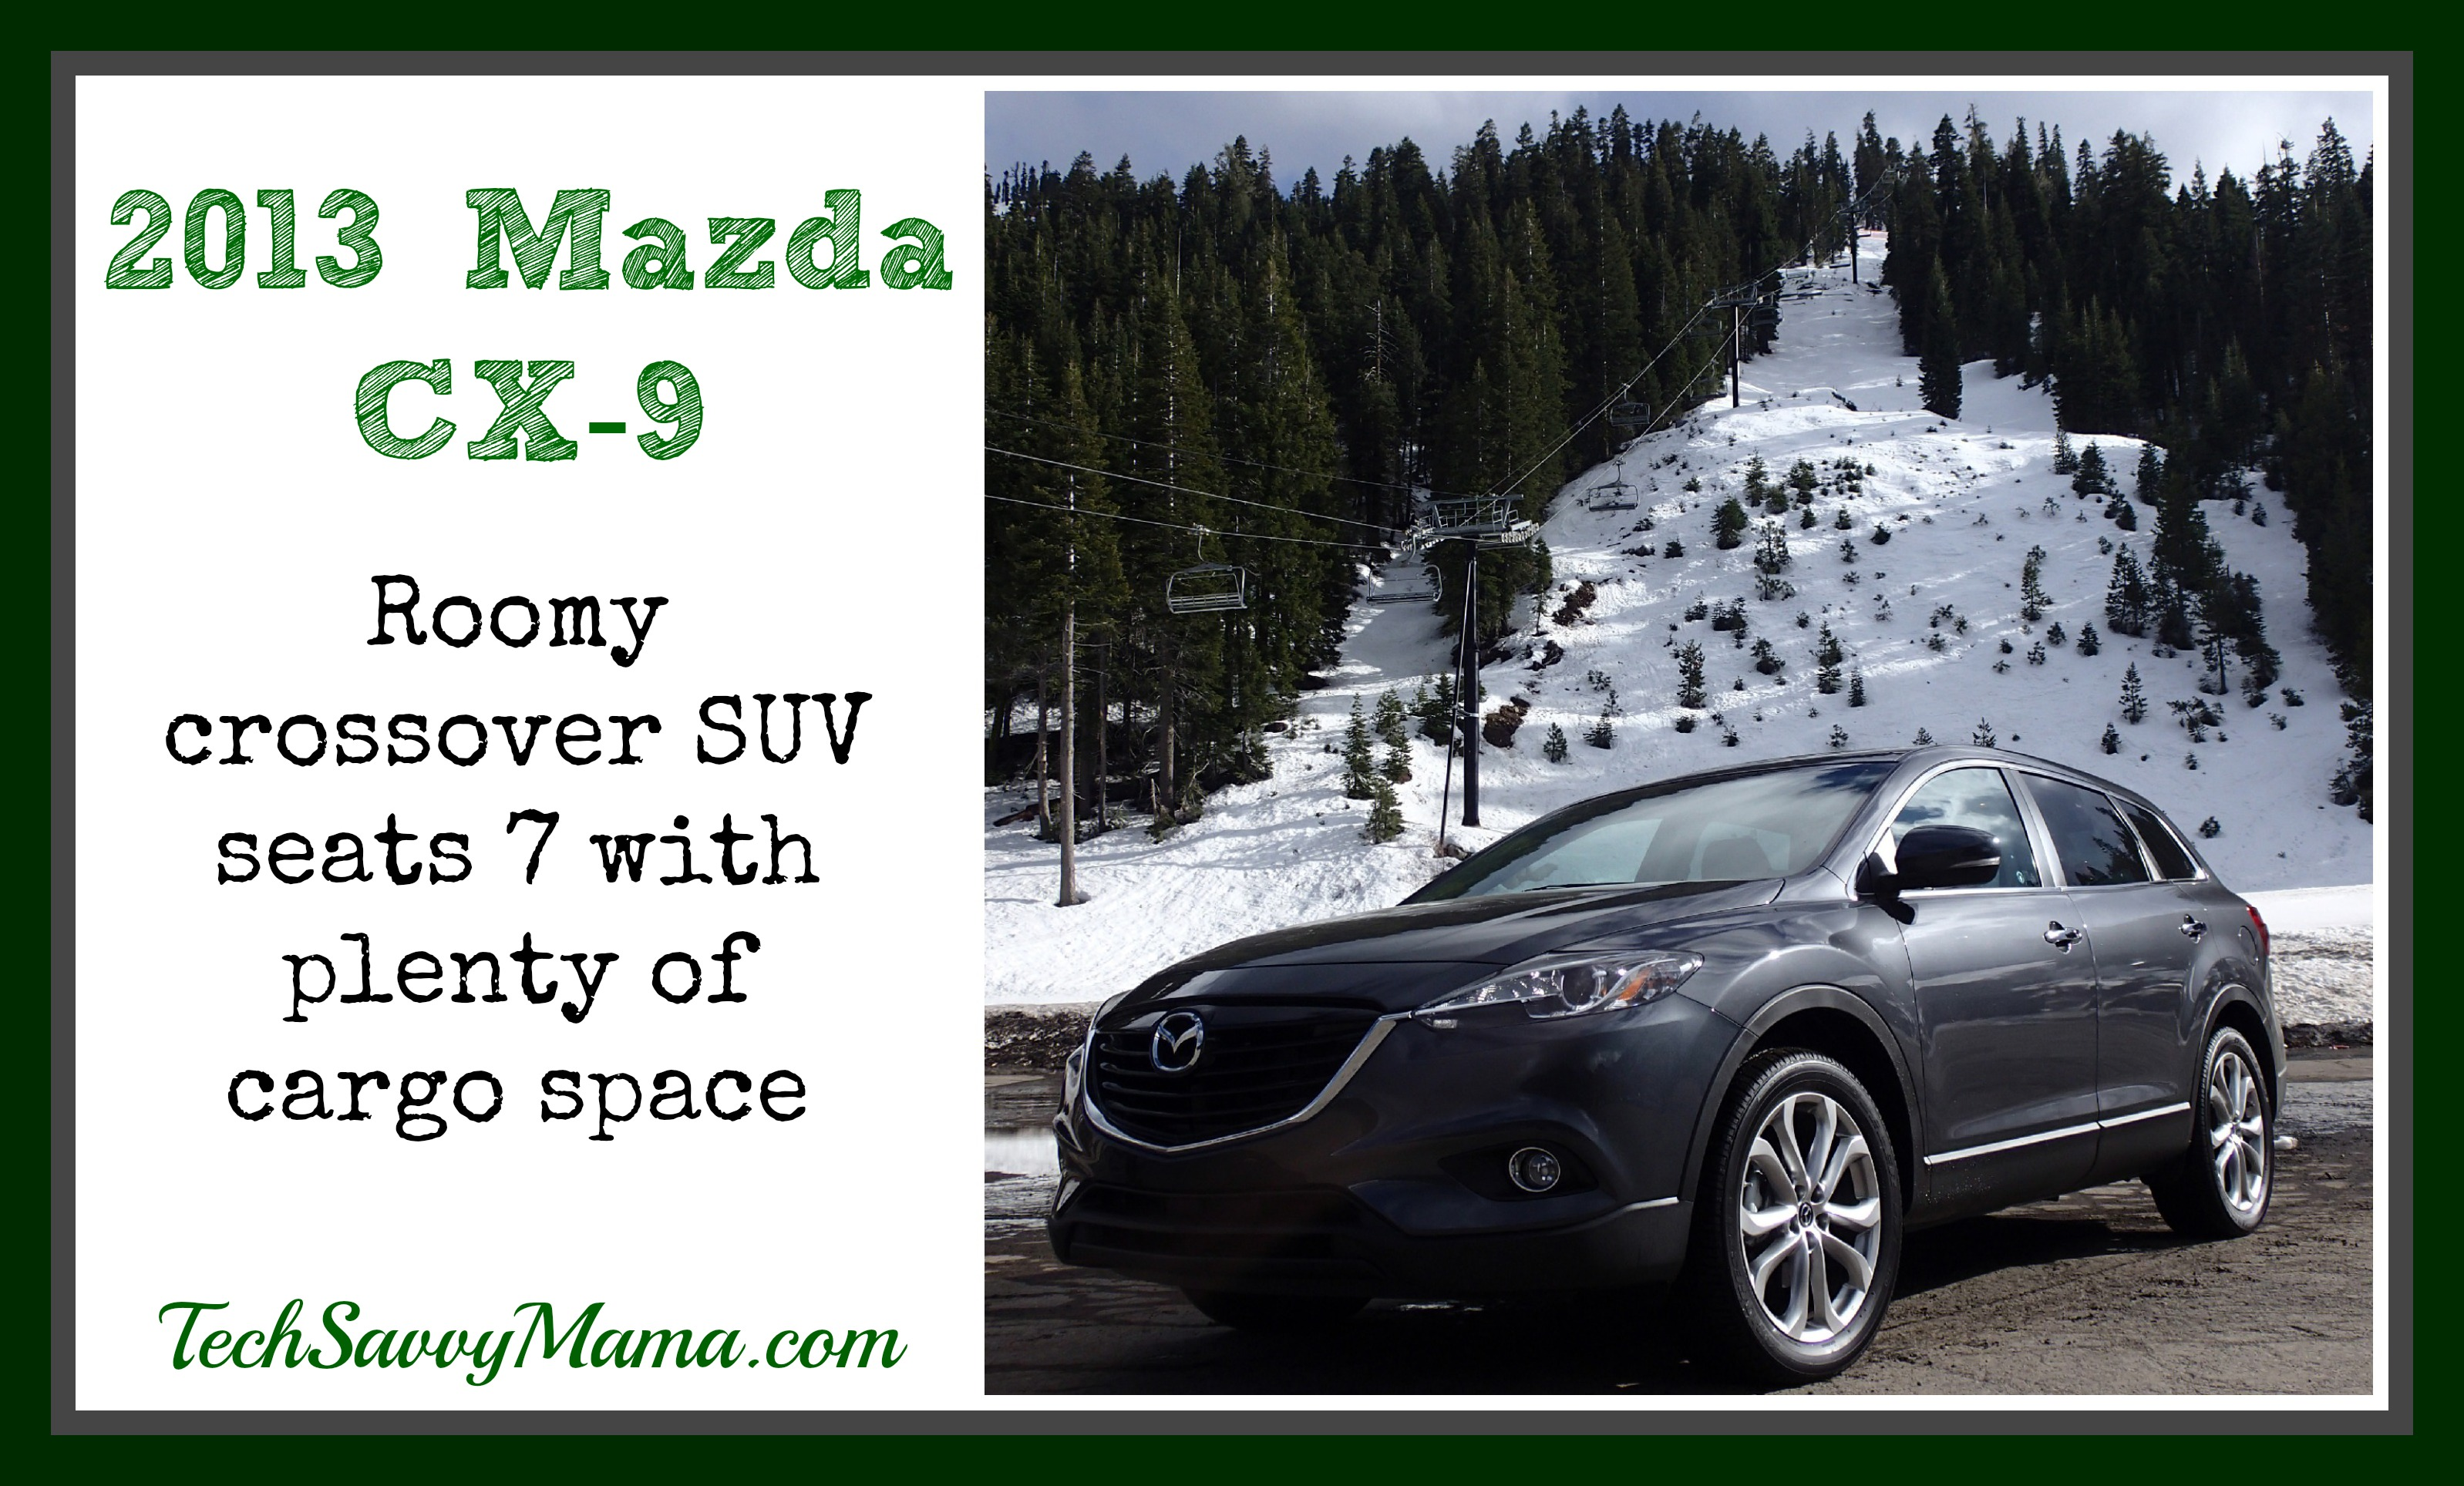 2013 Mazda CX-9: Affordable 7 Seat Crossover with Room for the Whole Family